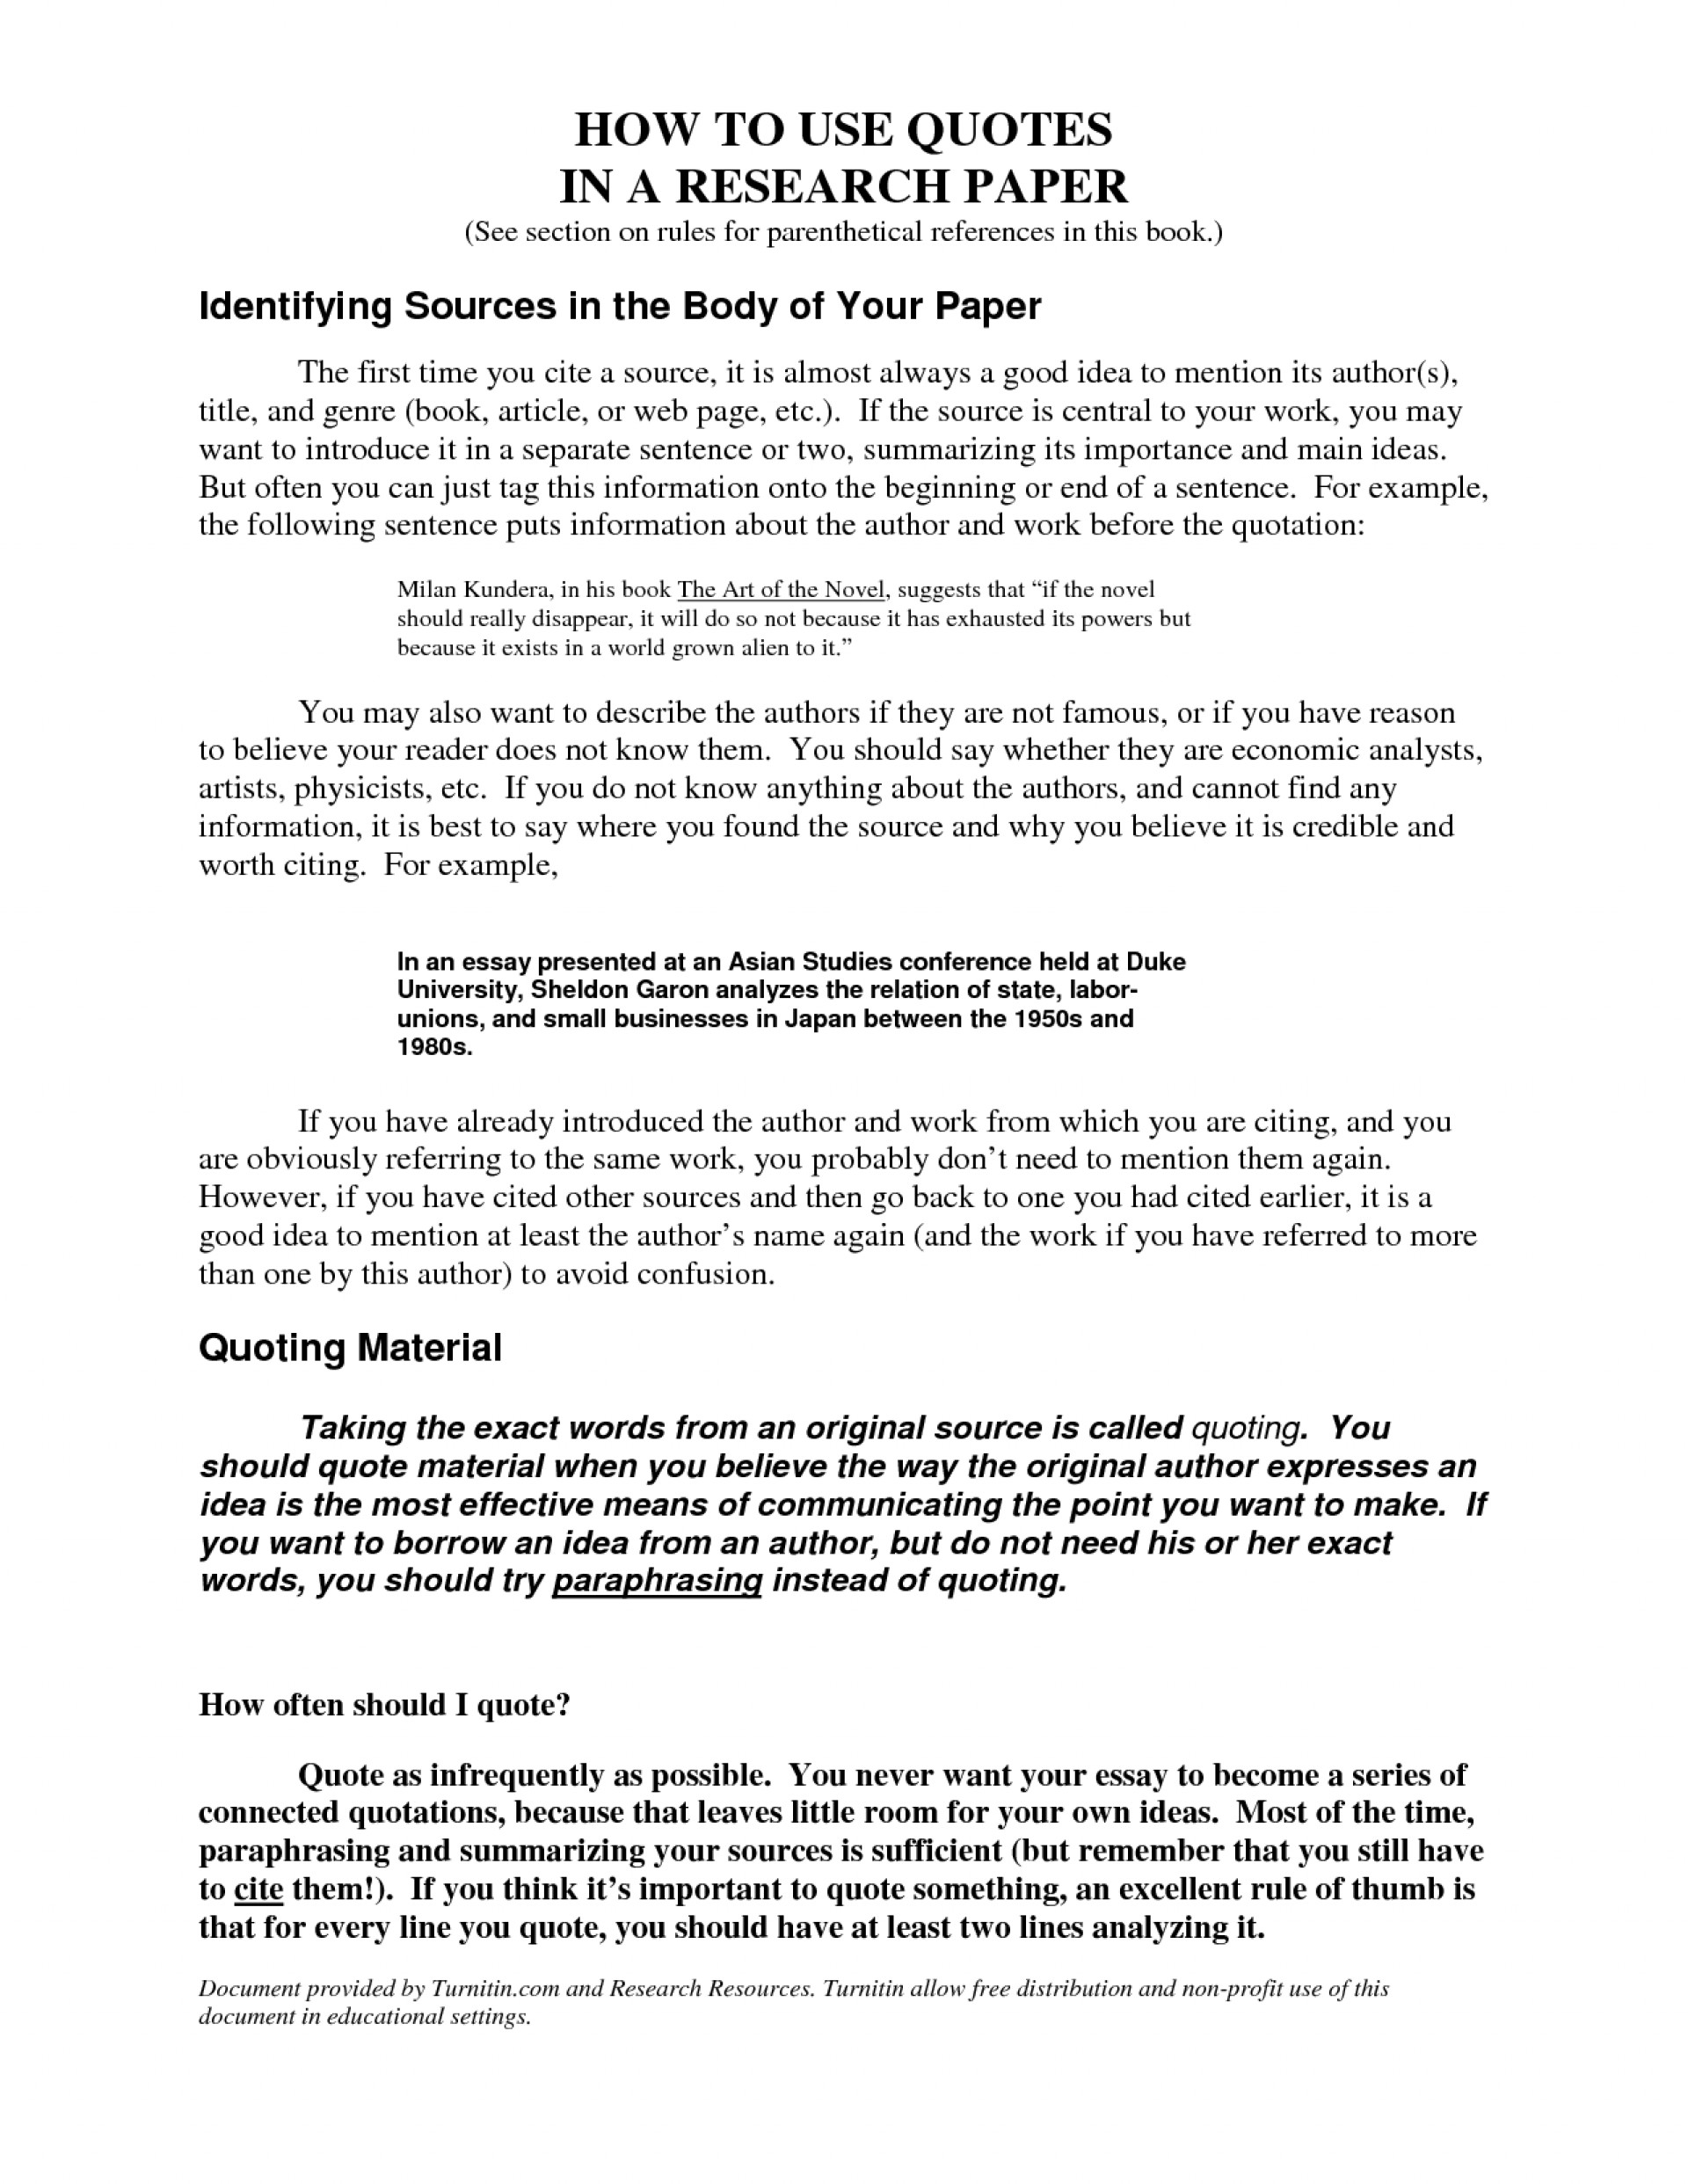 003 Best Solutions Of Writing Quotes In Essays Marvelous Embedding On Quotestopics Essay Example Quoting Frightening An A Book Harvard Mla 1920